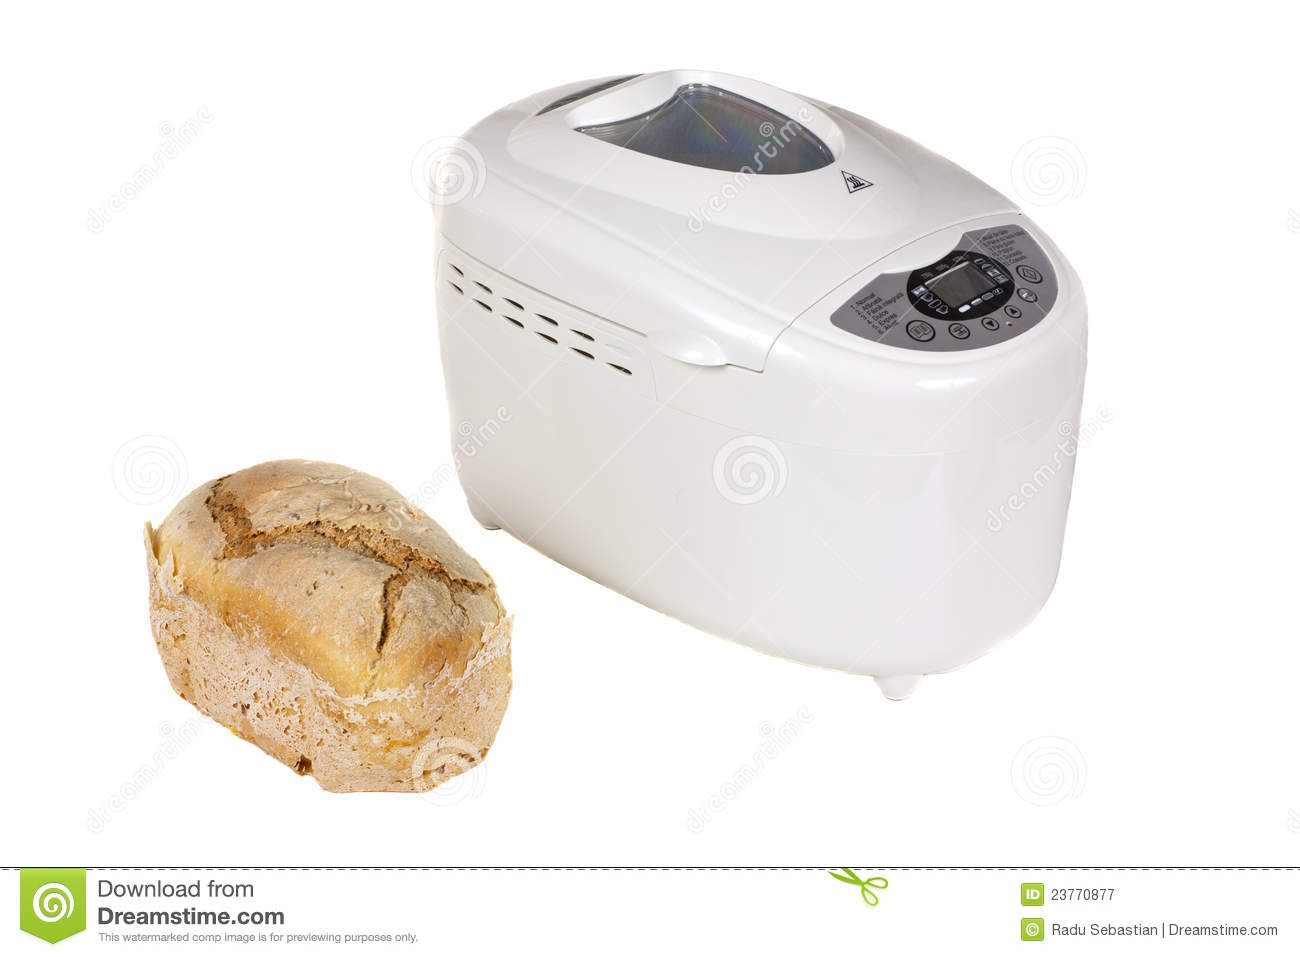 Mr Coffee Bread Maker Recipes : Electric Bread Maker Royalty Free Stock Photography - Image: 23770877